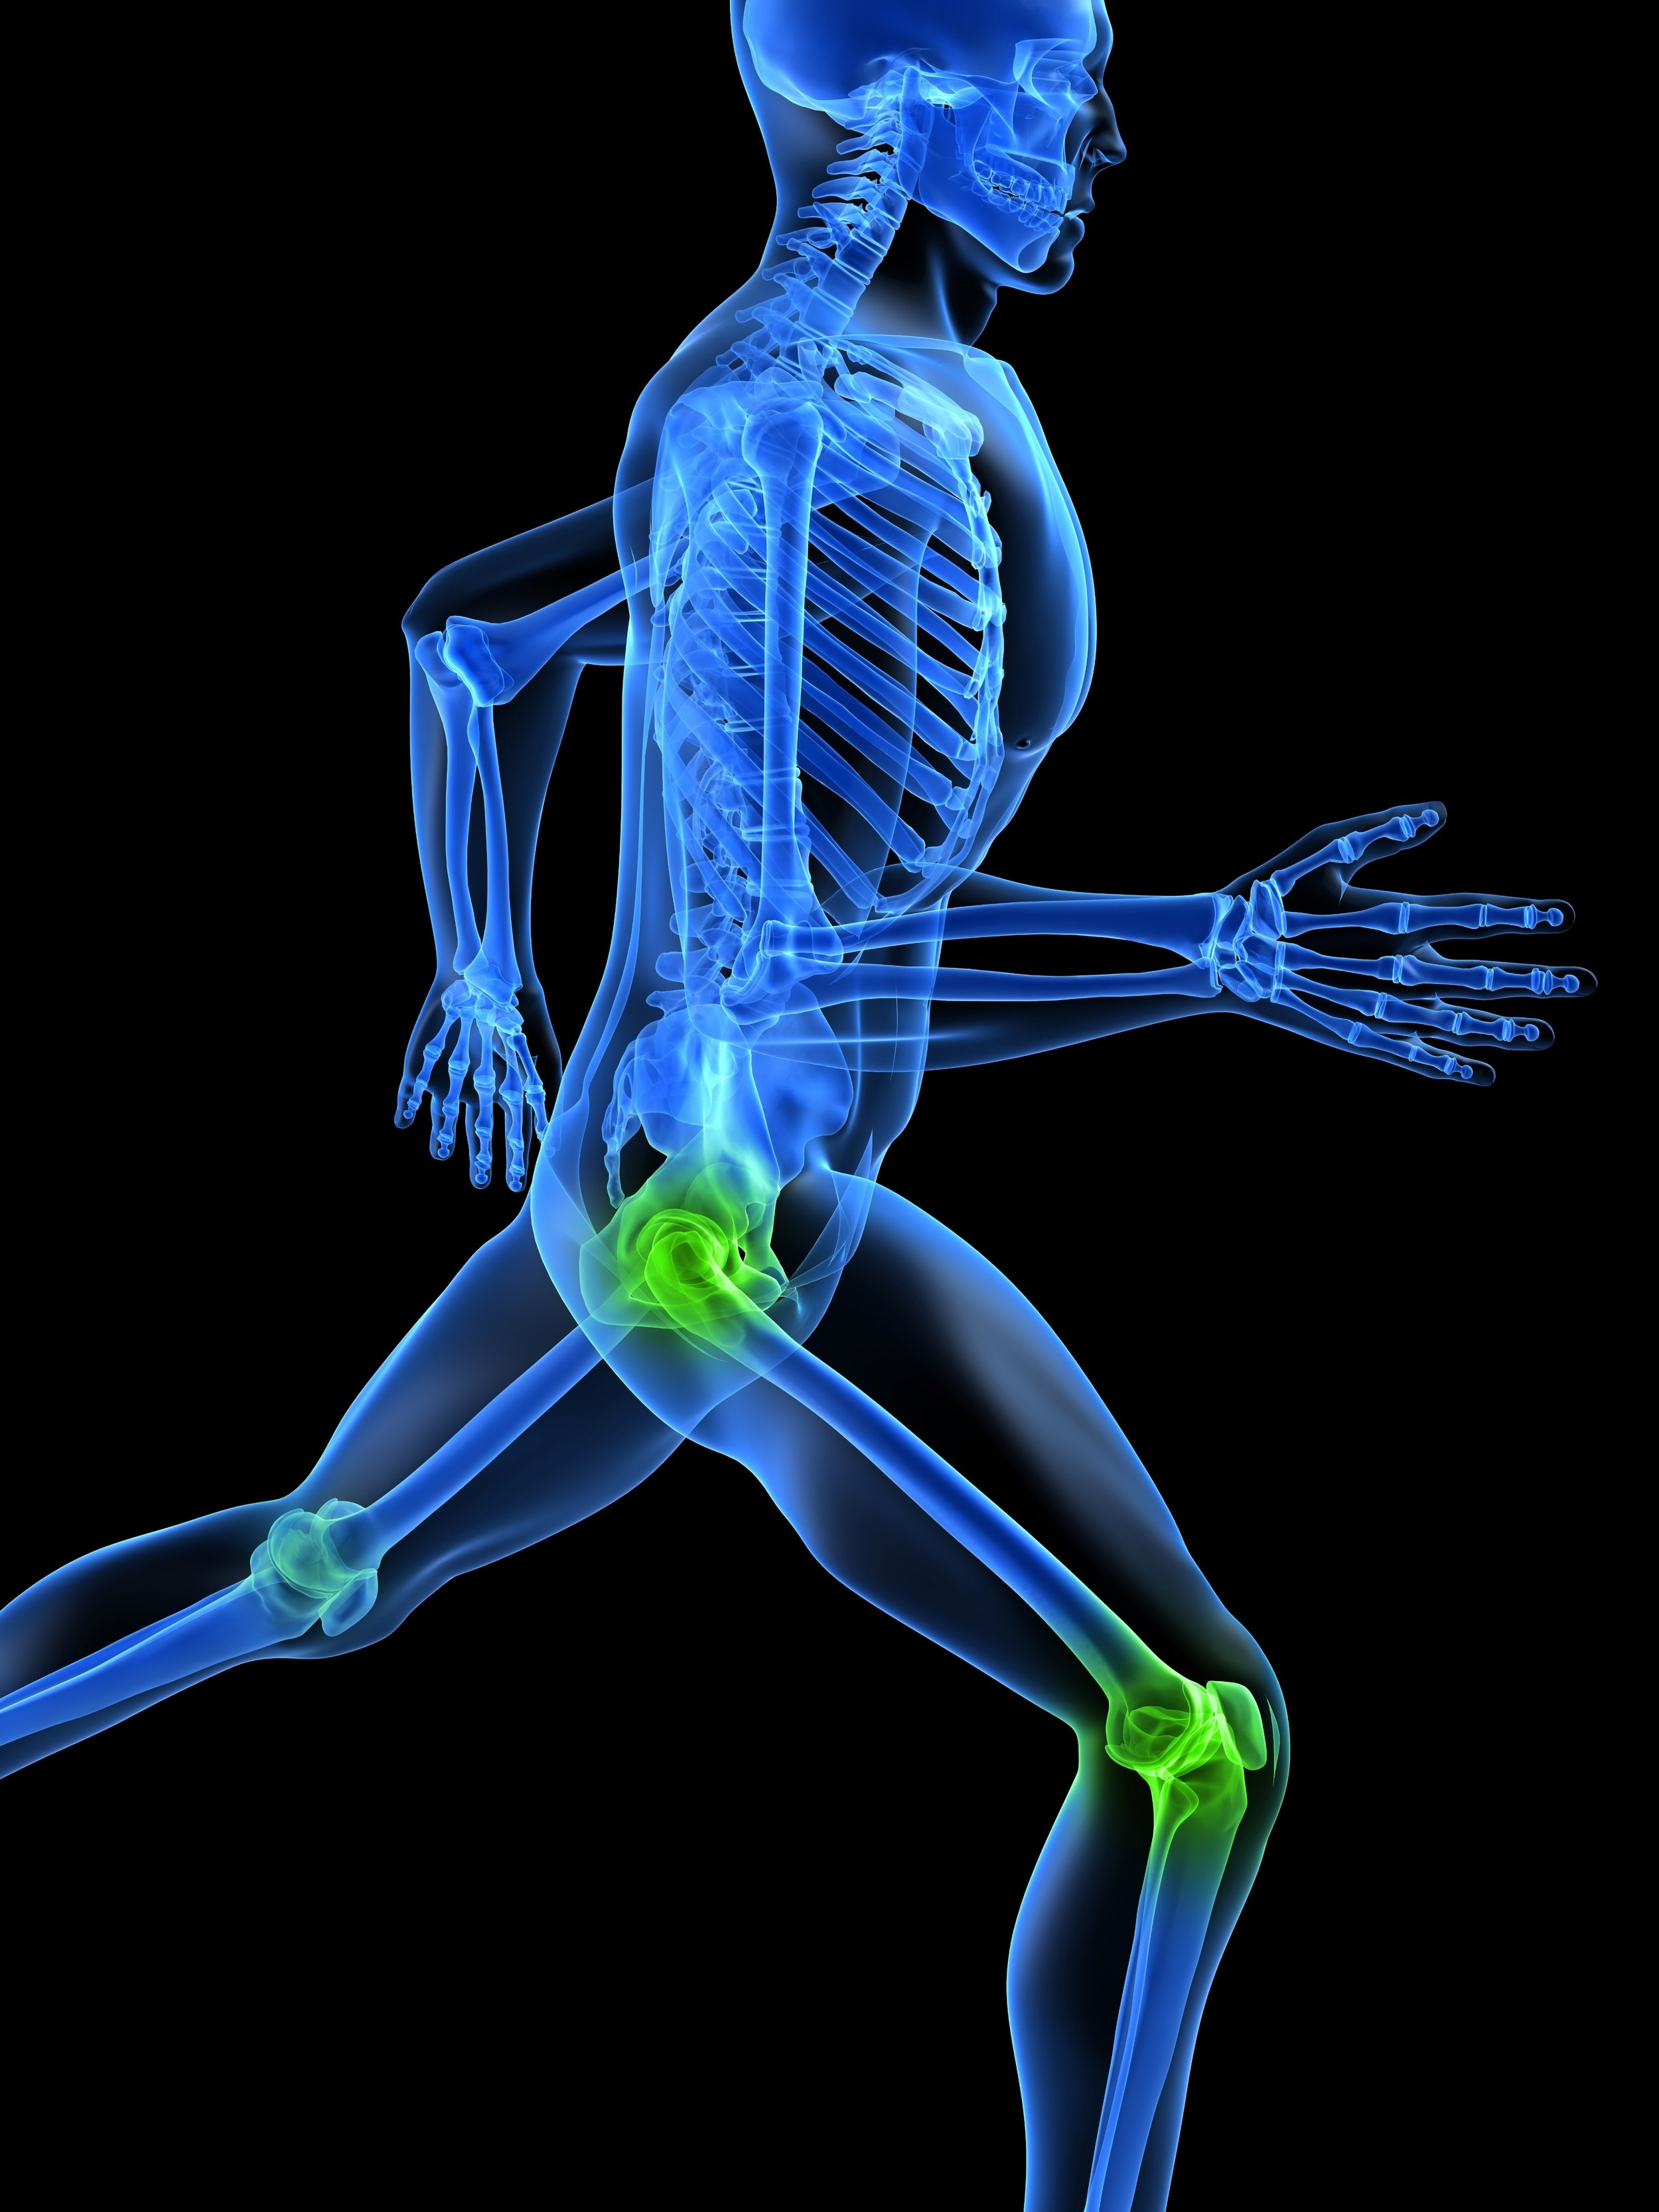 running-healthy-joints-7075411.jpg